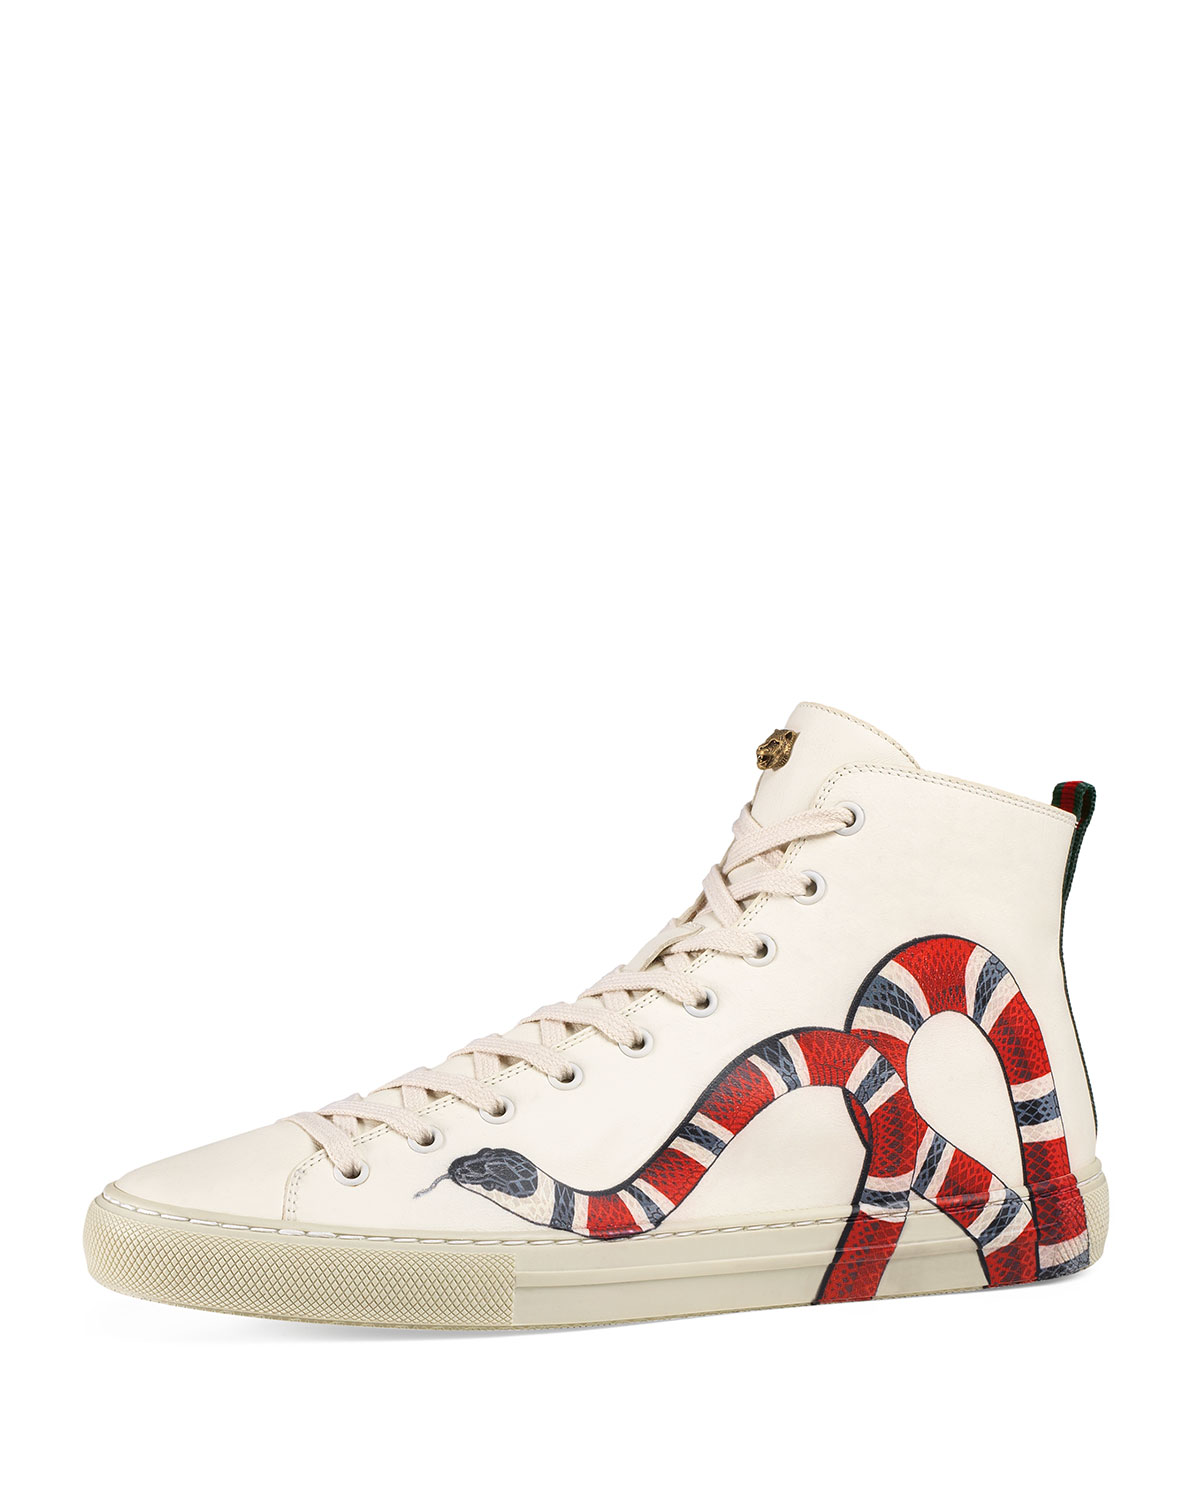 3c88e76d60f Gucci Men's Major Snake-Print Leather High-Top Sneakers, White ...